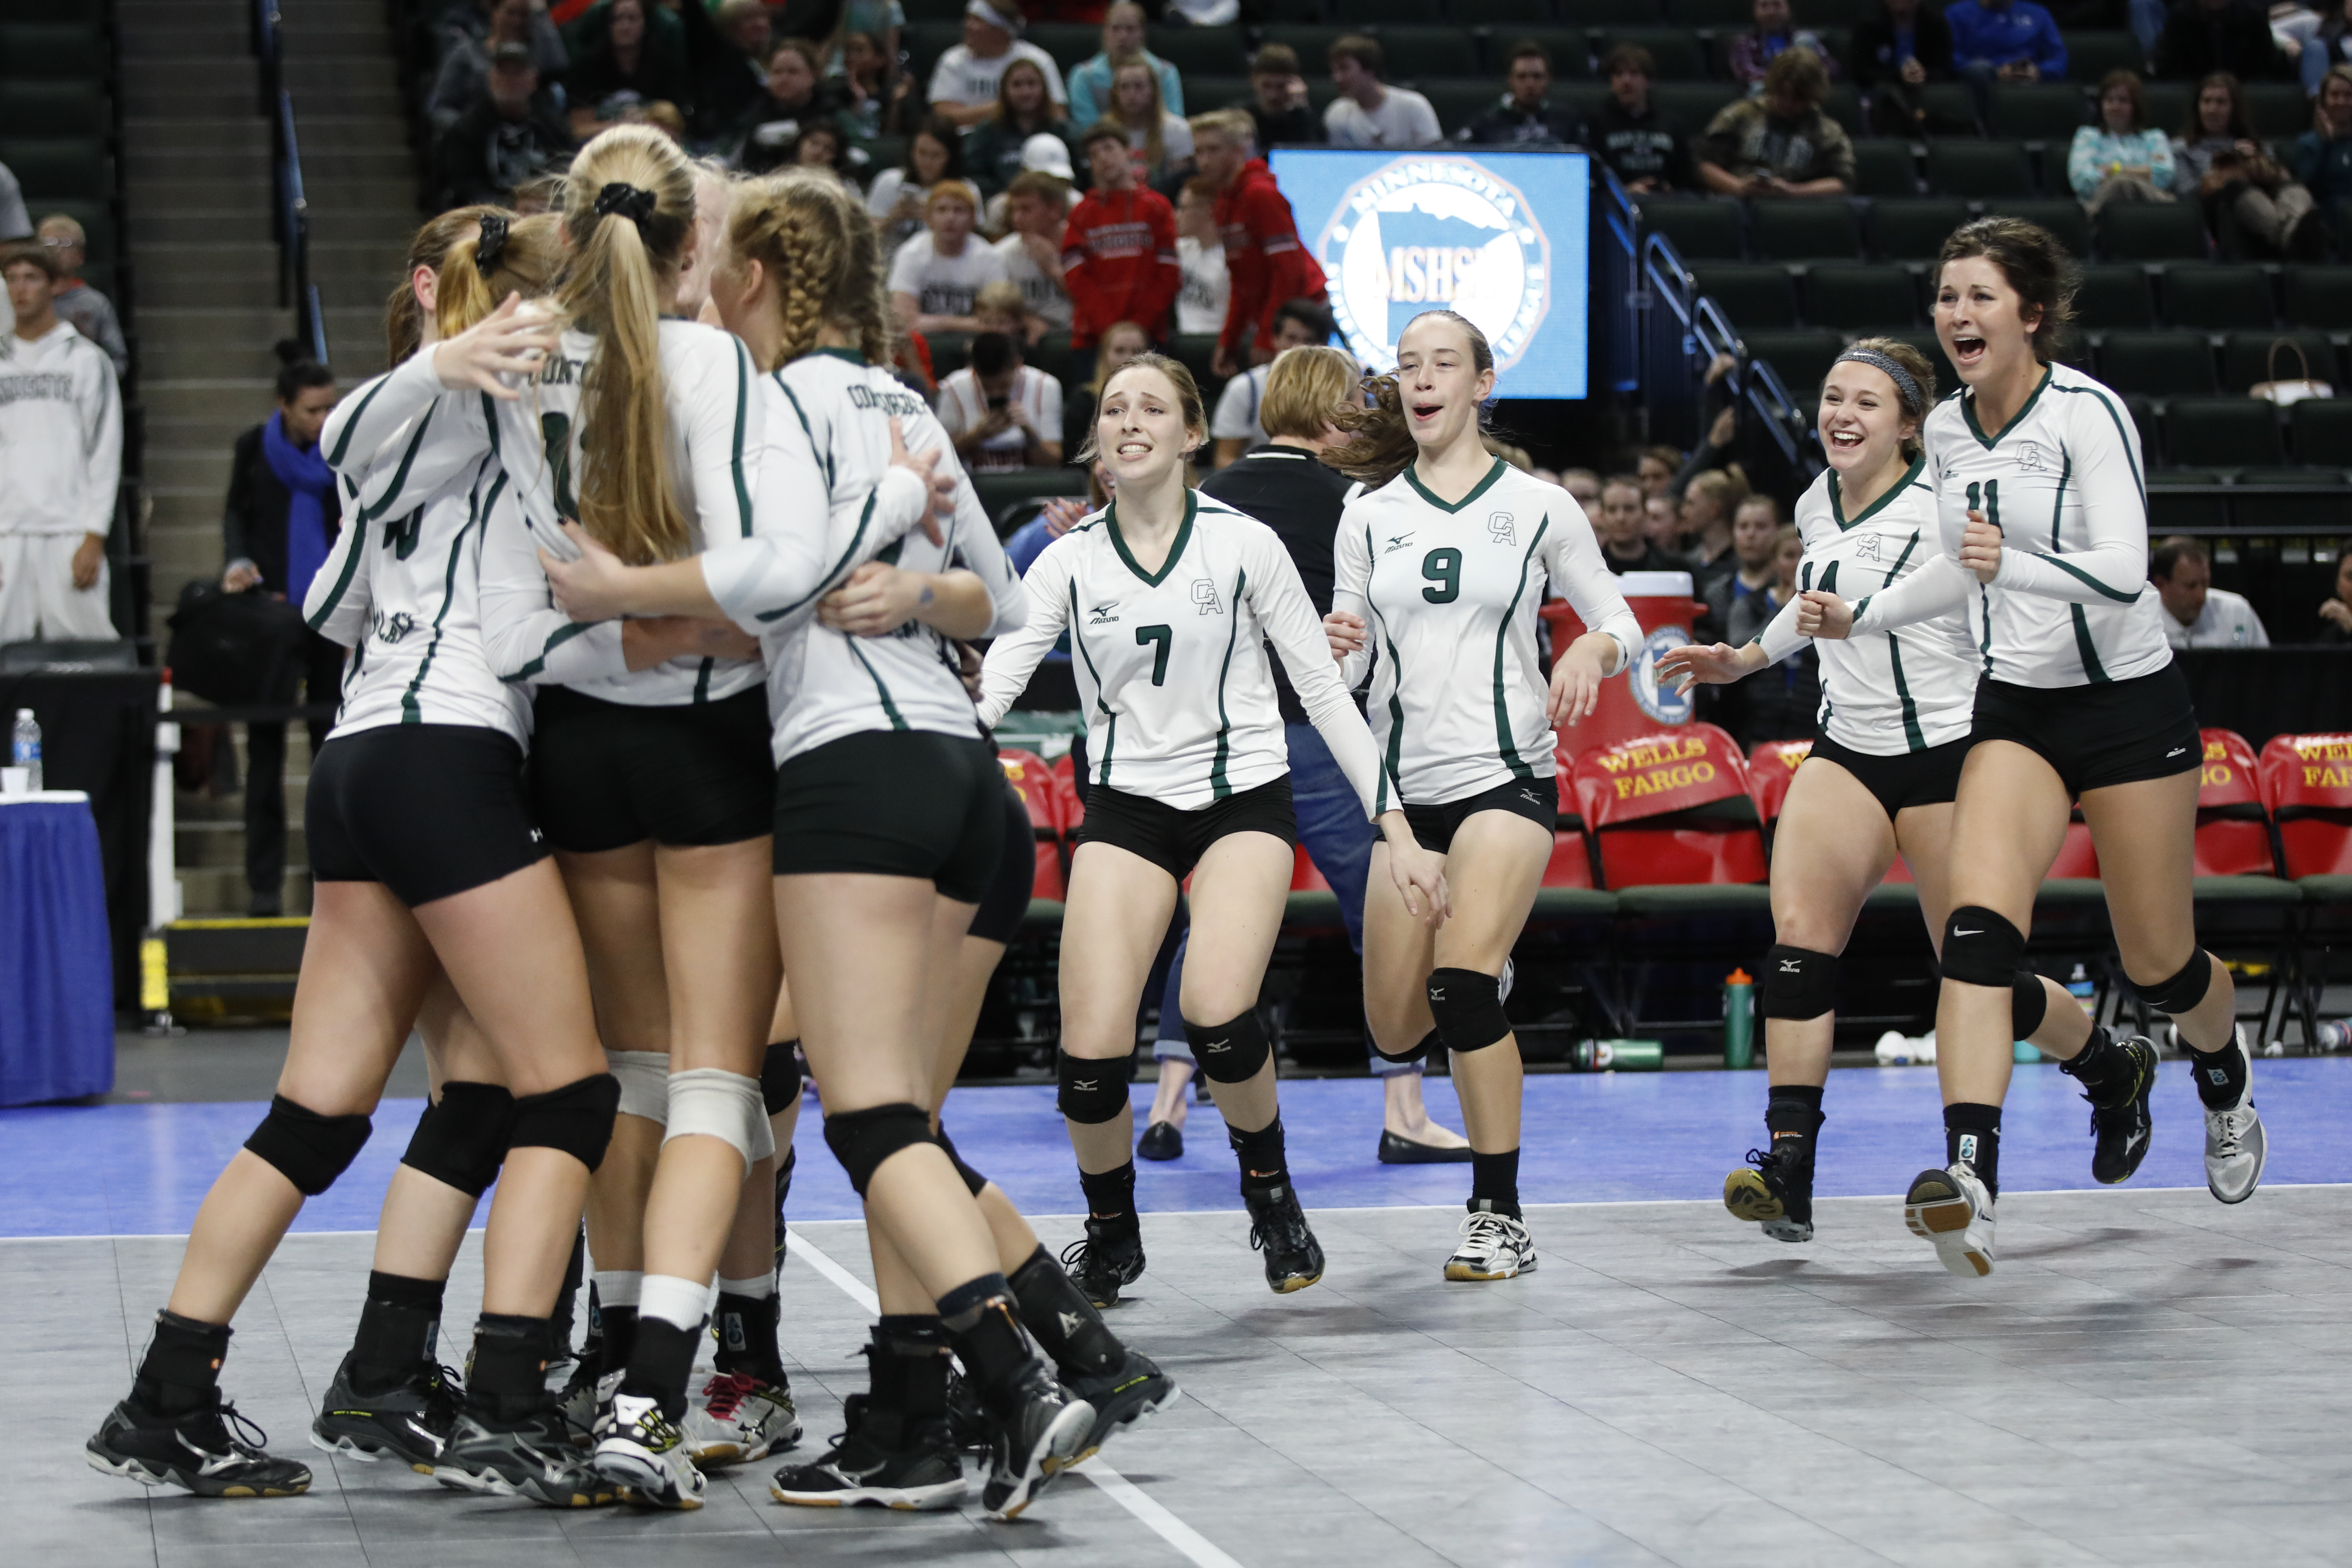 Concordia players rush the court after the upset over Kenyon-Wanamingo. Concordia defeated Kenyon in the final set in a close game in the 2A semi-finals at the Xcel Energy Center. Photo by Chris Juhn